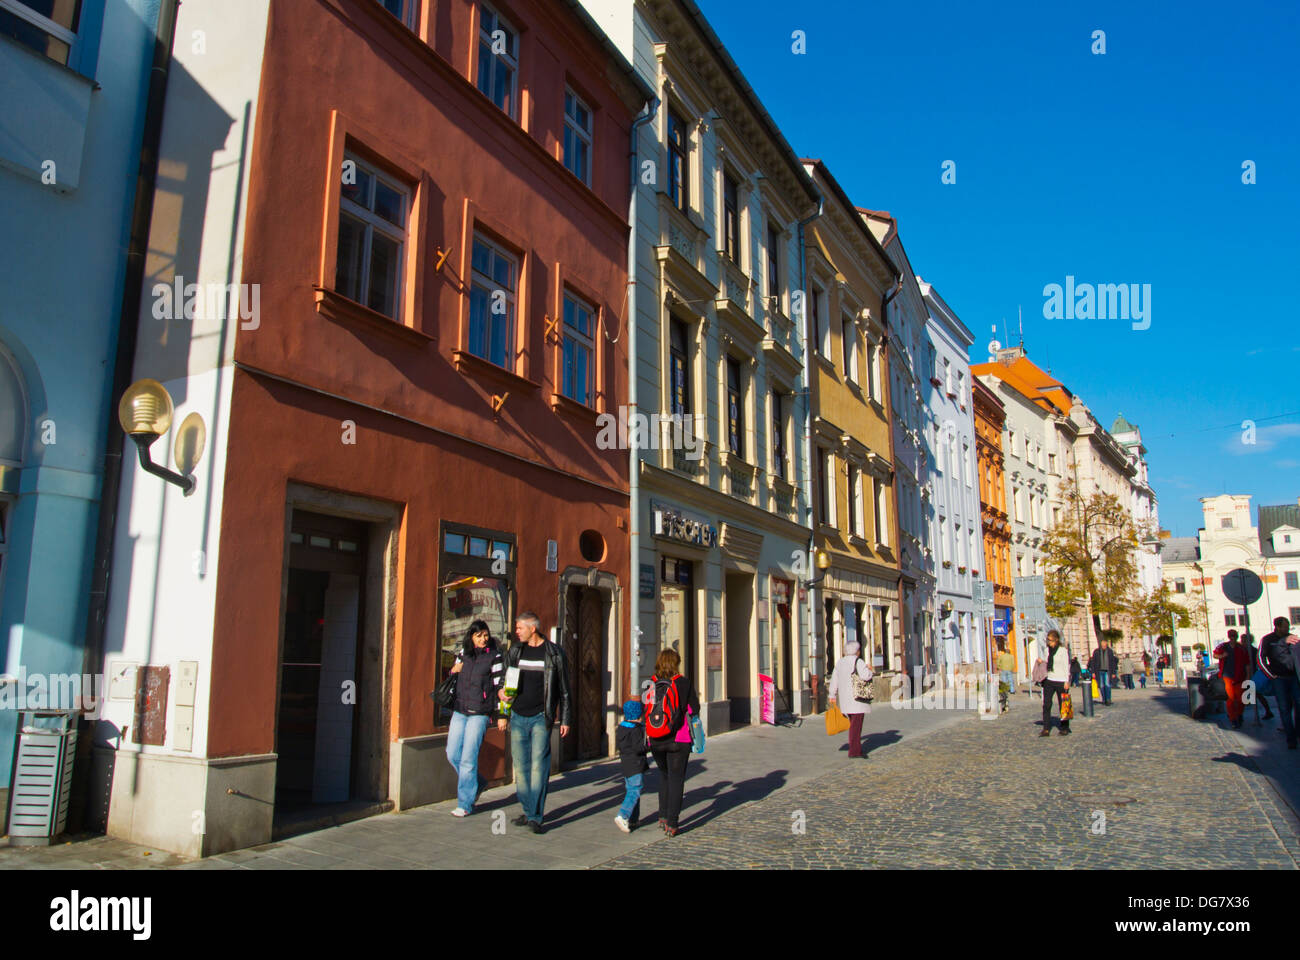 Benesova pedestrian street leads up to the main square in old town Jihlava city Vysocina region Moravia central Czech Republic - Stock Image